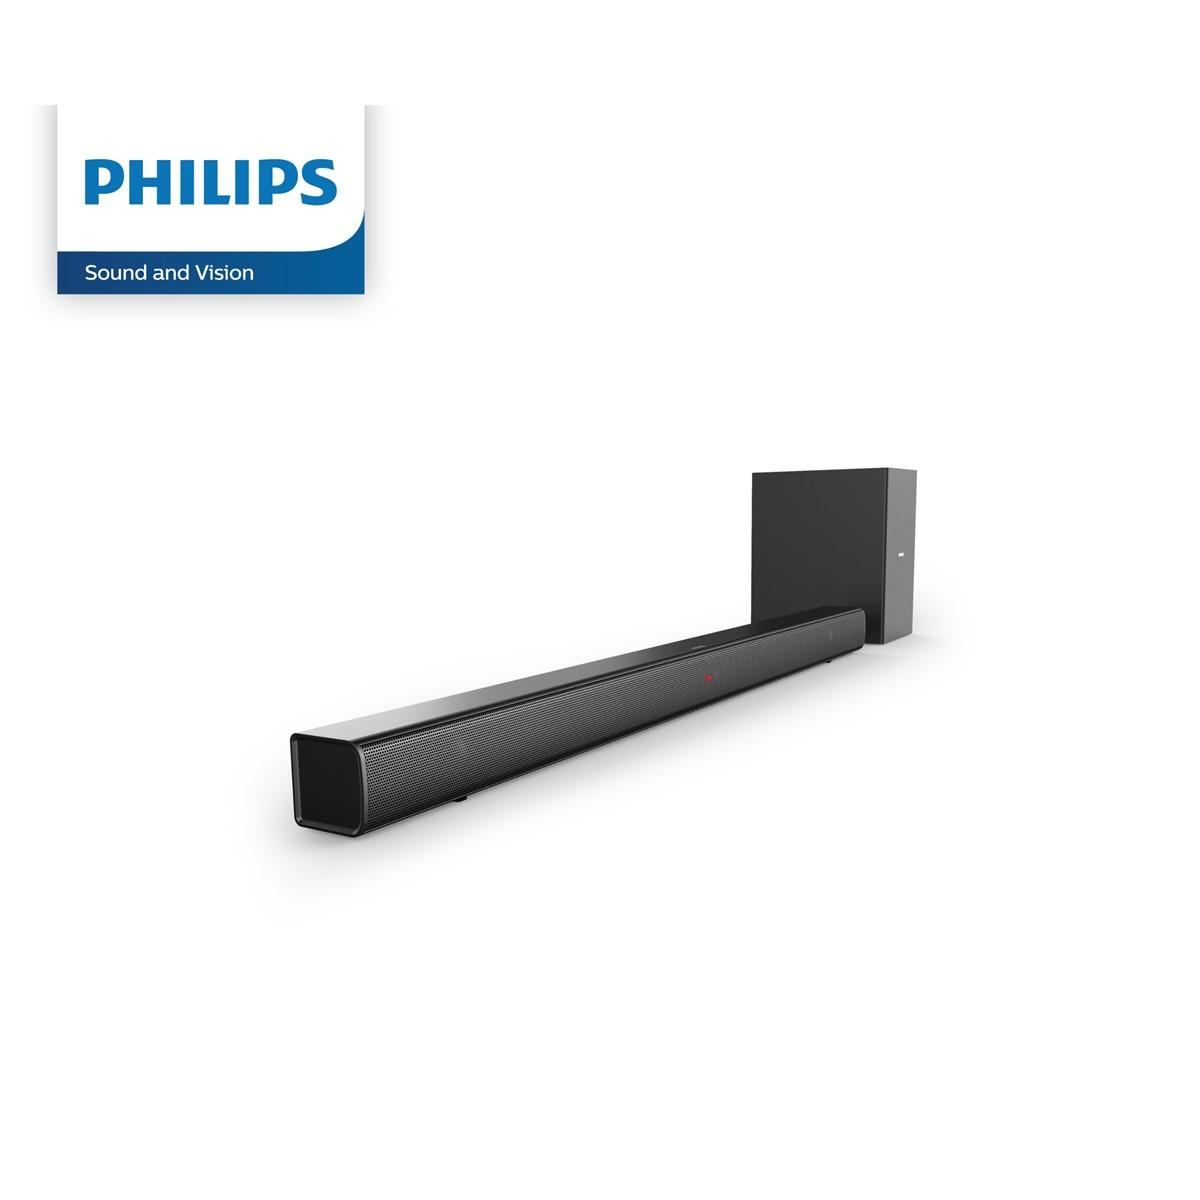 Philips Soundbar Speaker 2 1 Channel Wireless Subwoofer HTL1510B with 1  year warranty